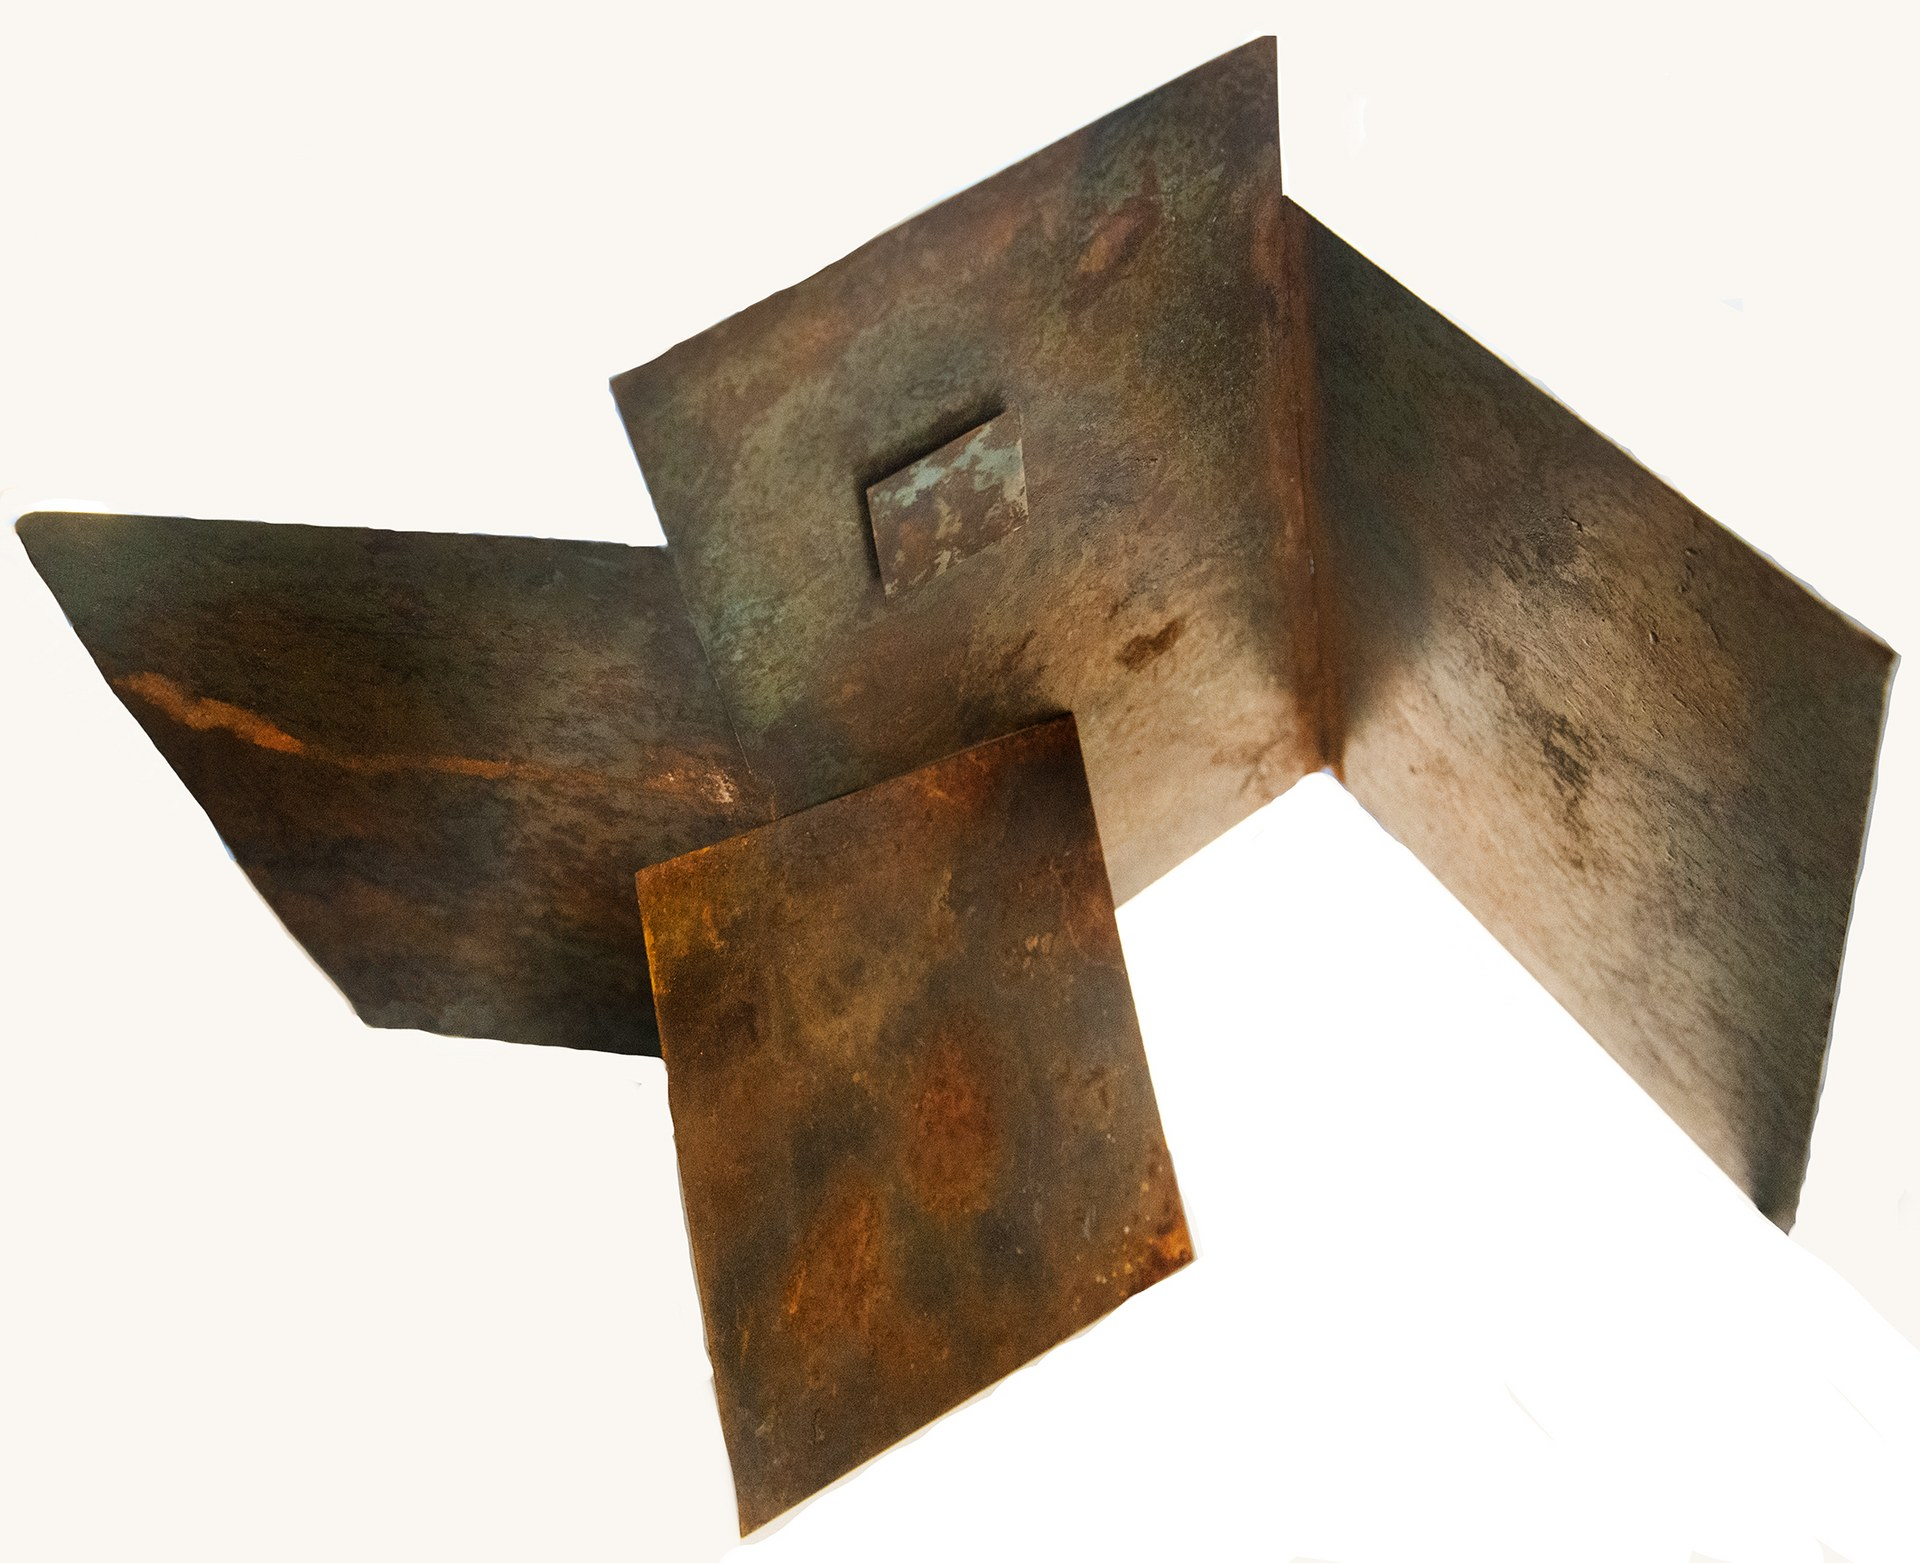 SYMBIOSIS IV and leaning panel: h36cms.w50cms,d17cms metal squares 5x5 cms